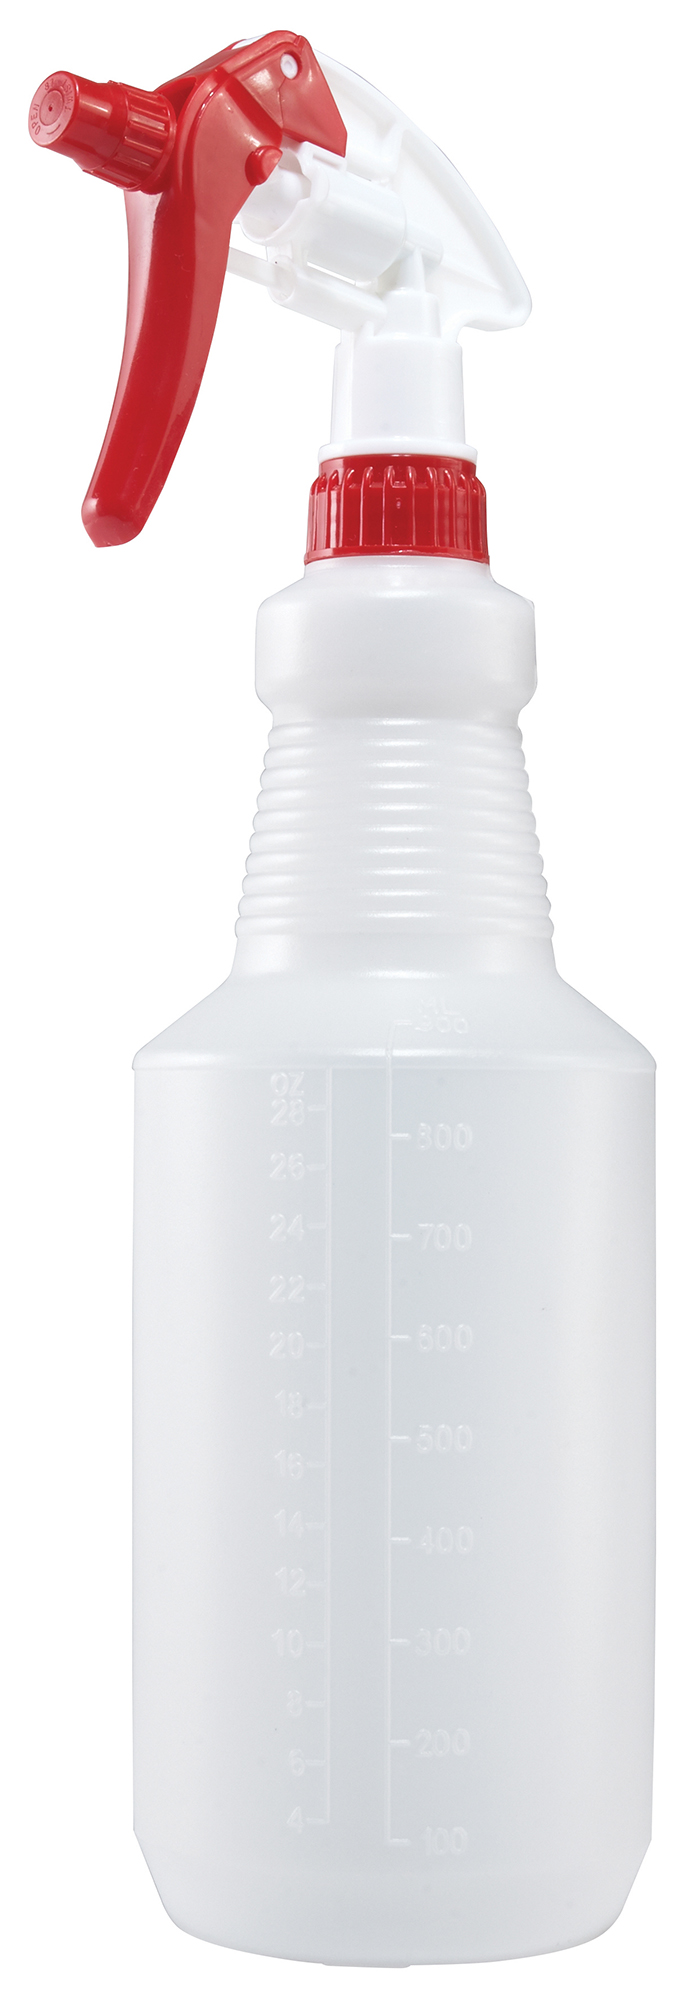 Winco PSR-9R cleaning accessories